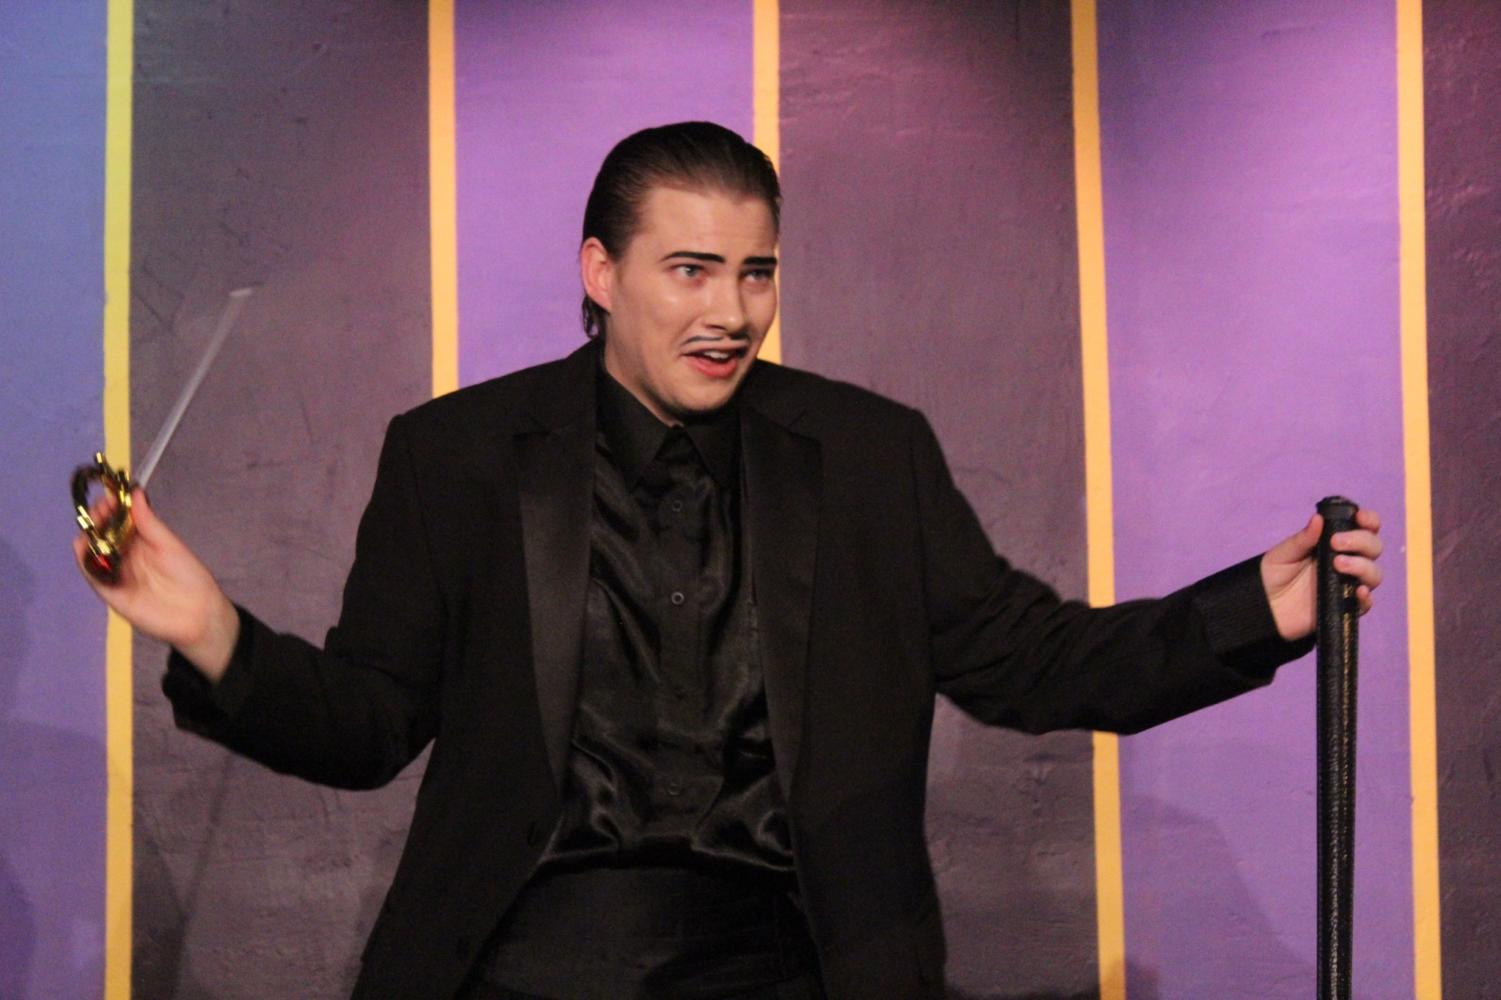 Dylan Zoller shows the audience his acting skills on the opening night of the Addams Family Musical.